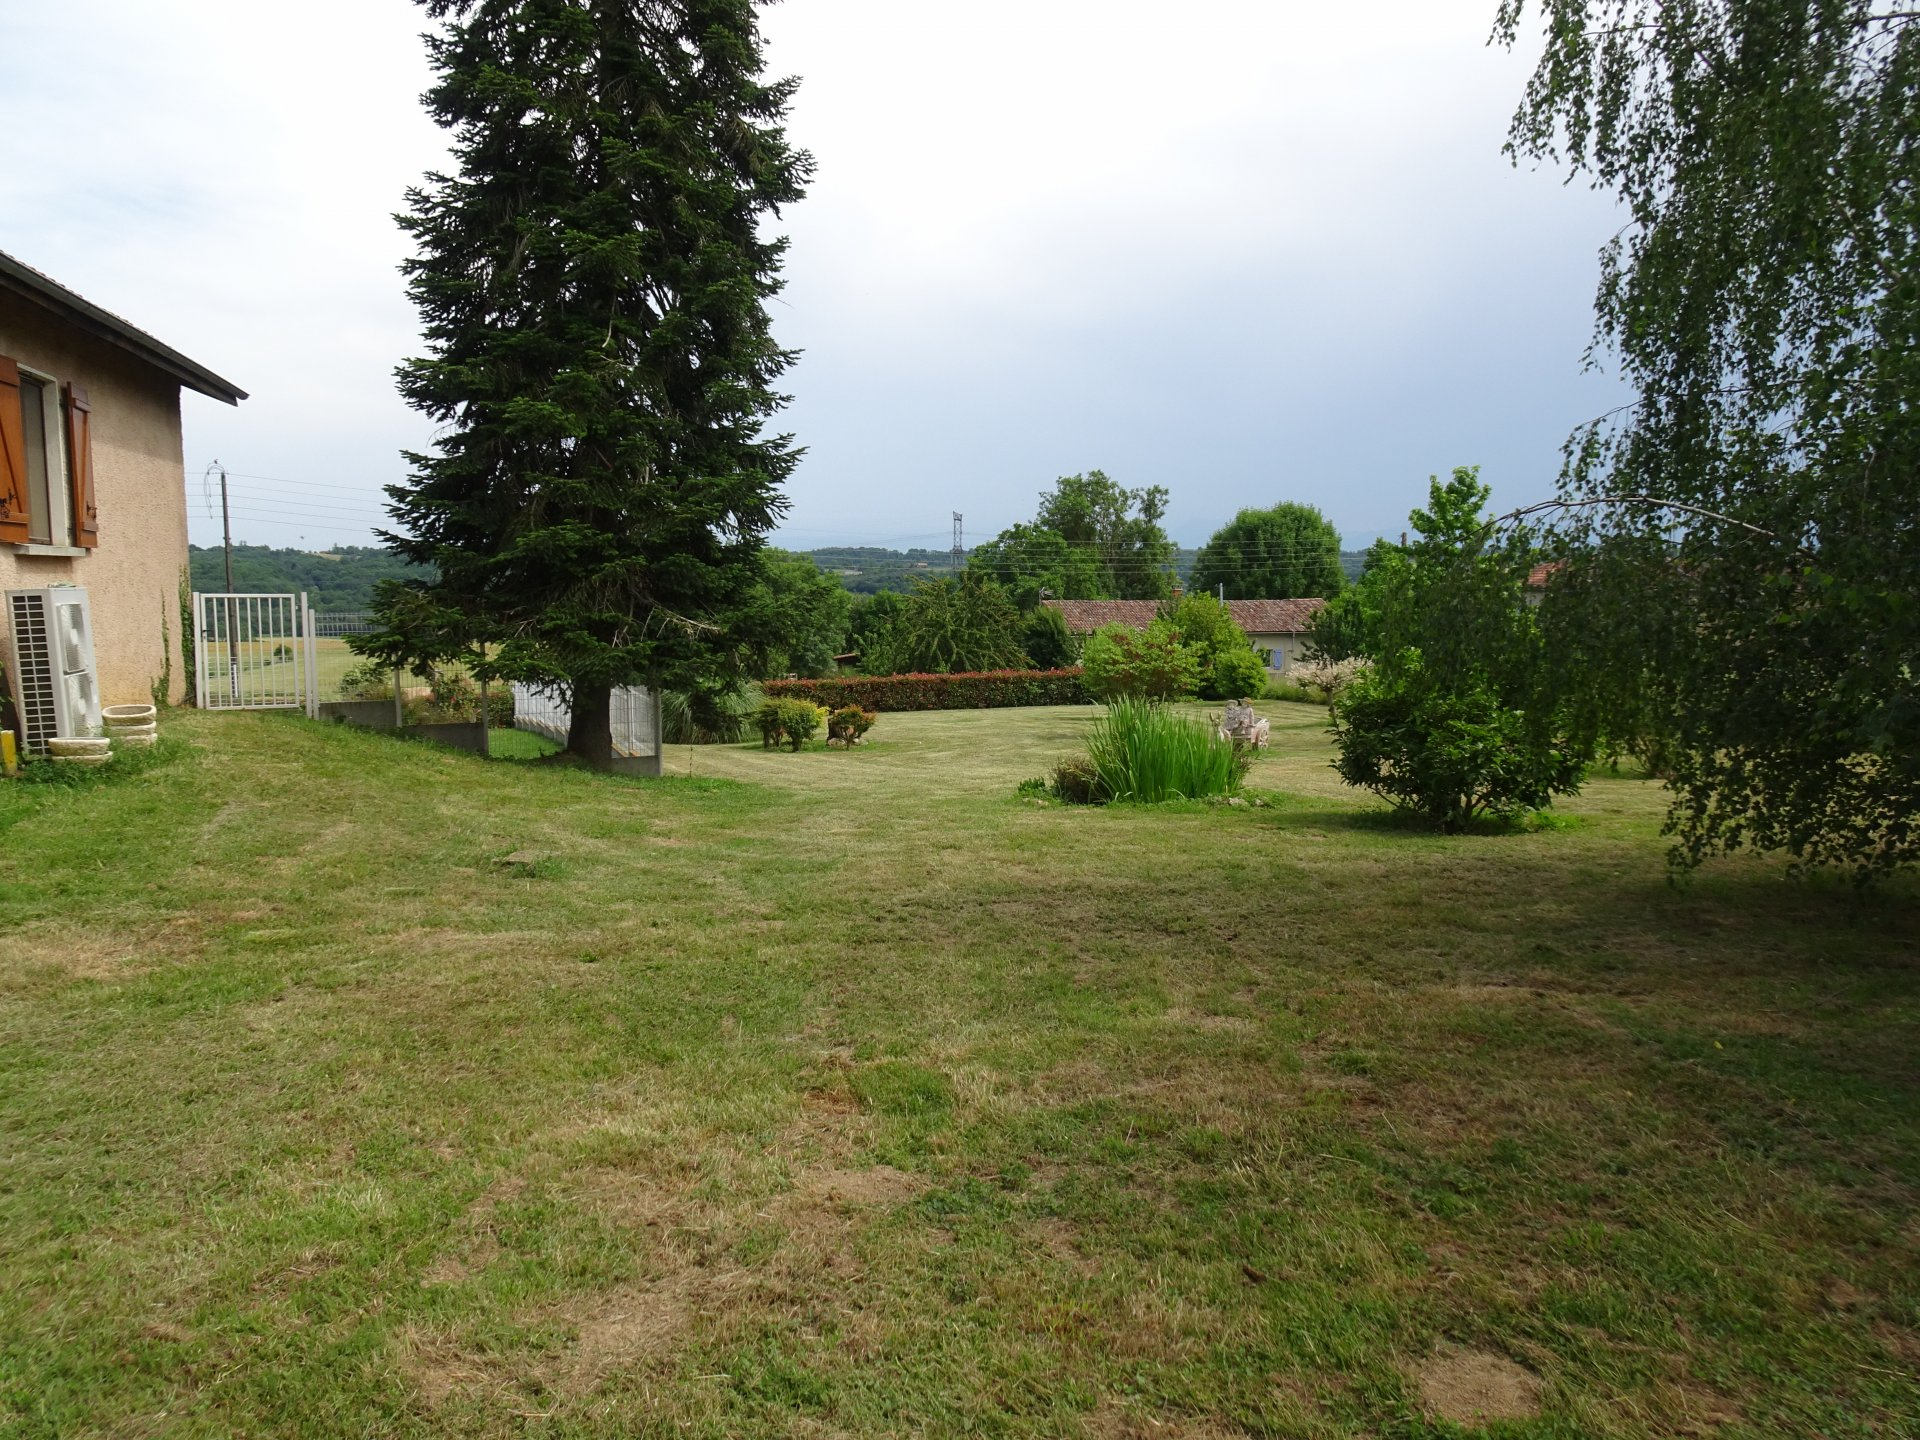 Housing complex near Saman with 7280 m² of land